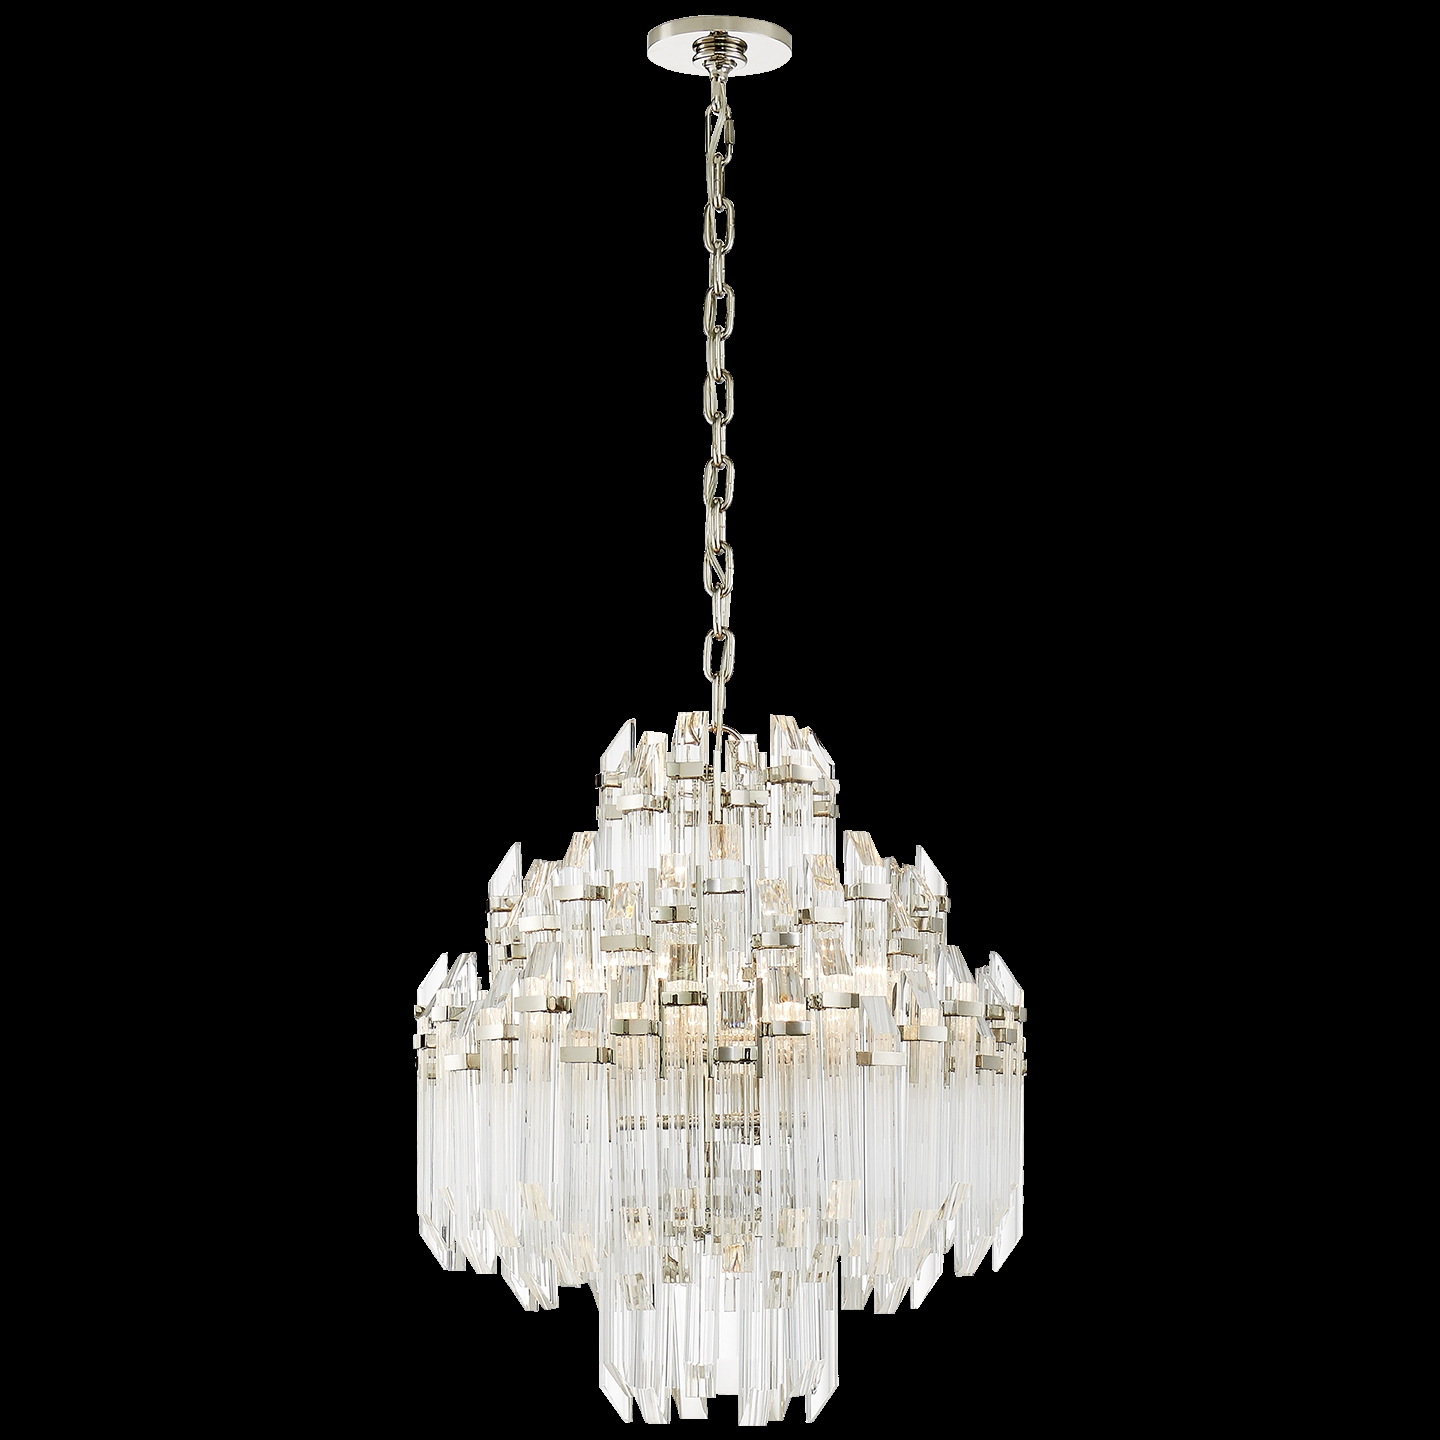 Signature Designer Crystal Chandelier Circa Lighting With Acrylic Chandeliers (View 12 of 25)